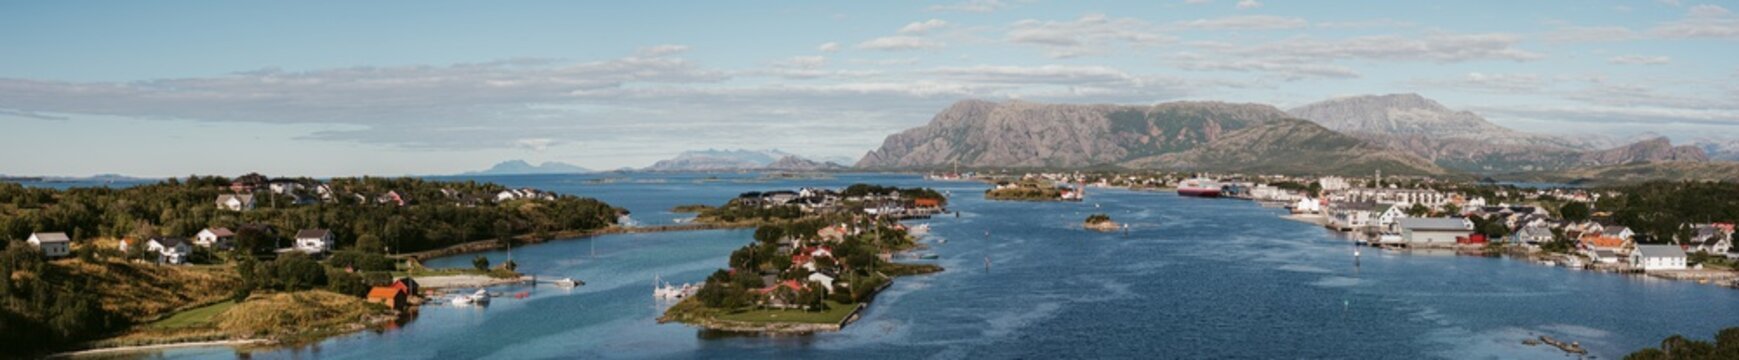 Beautiful panorama of city on islands and along coastline in strait against misty highland at horizon in fair weather